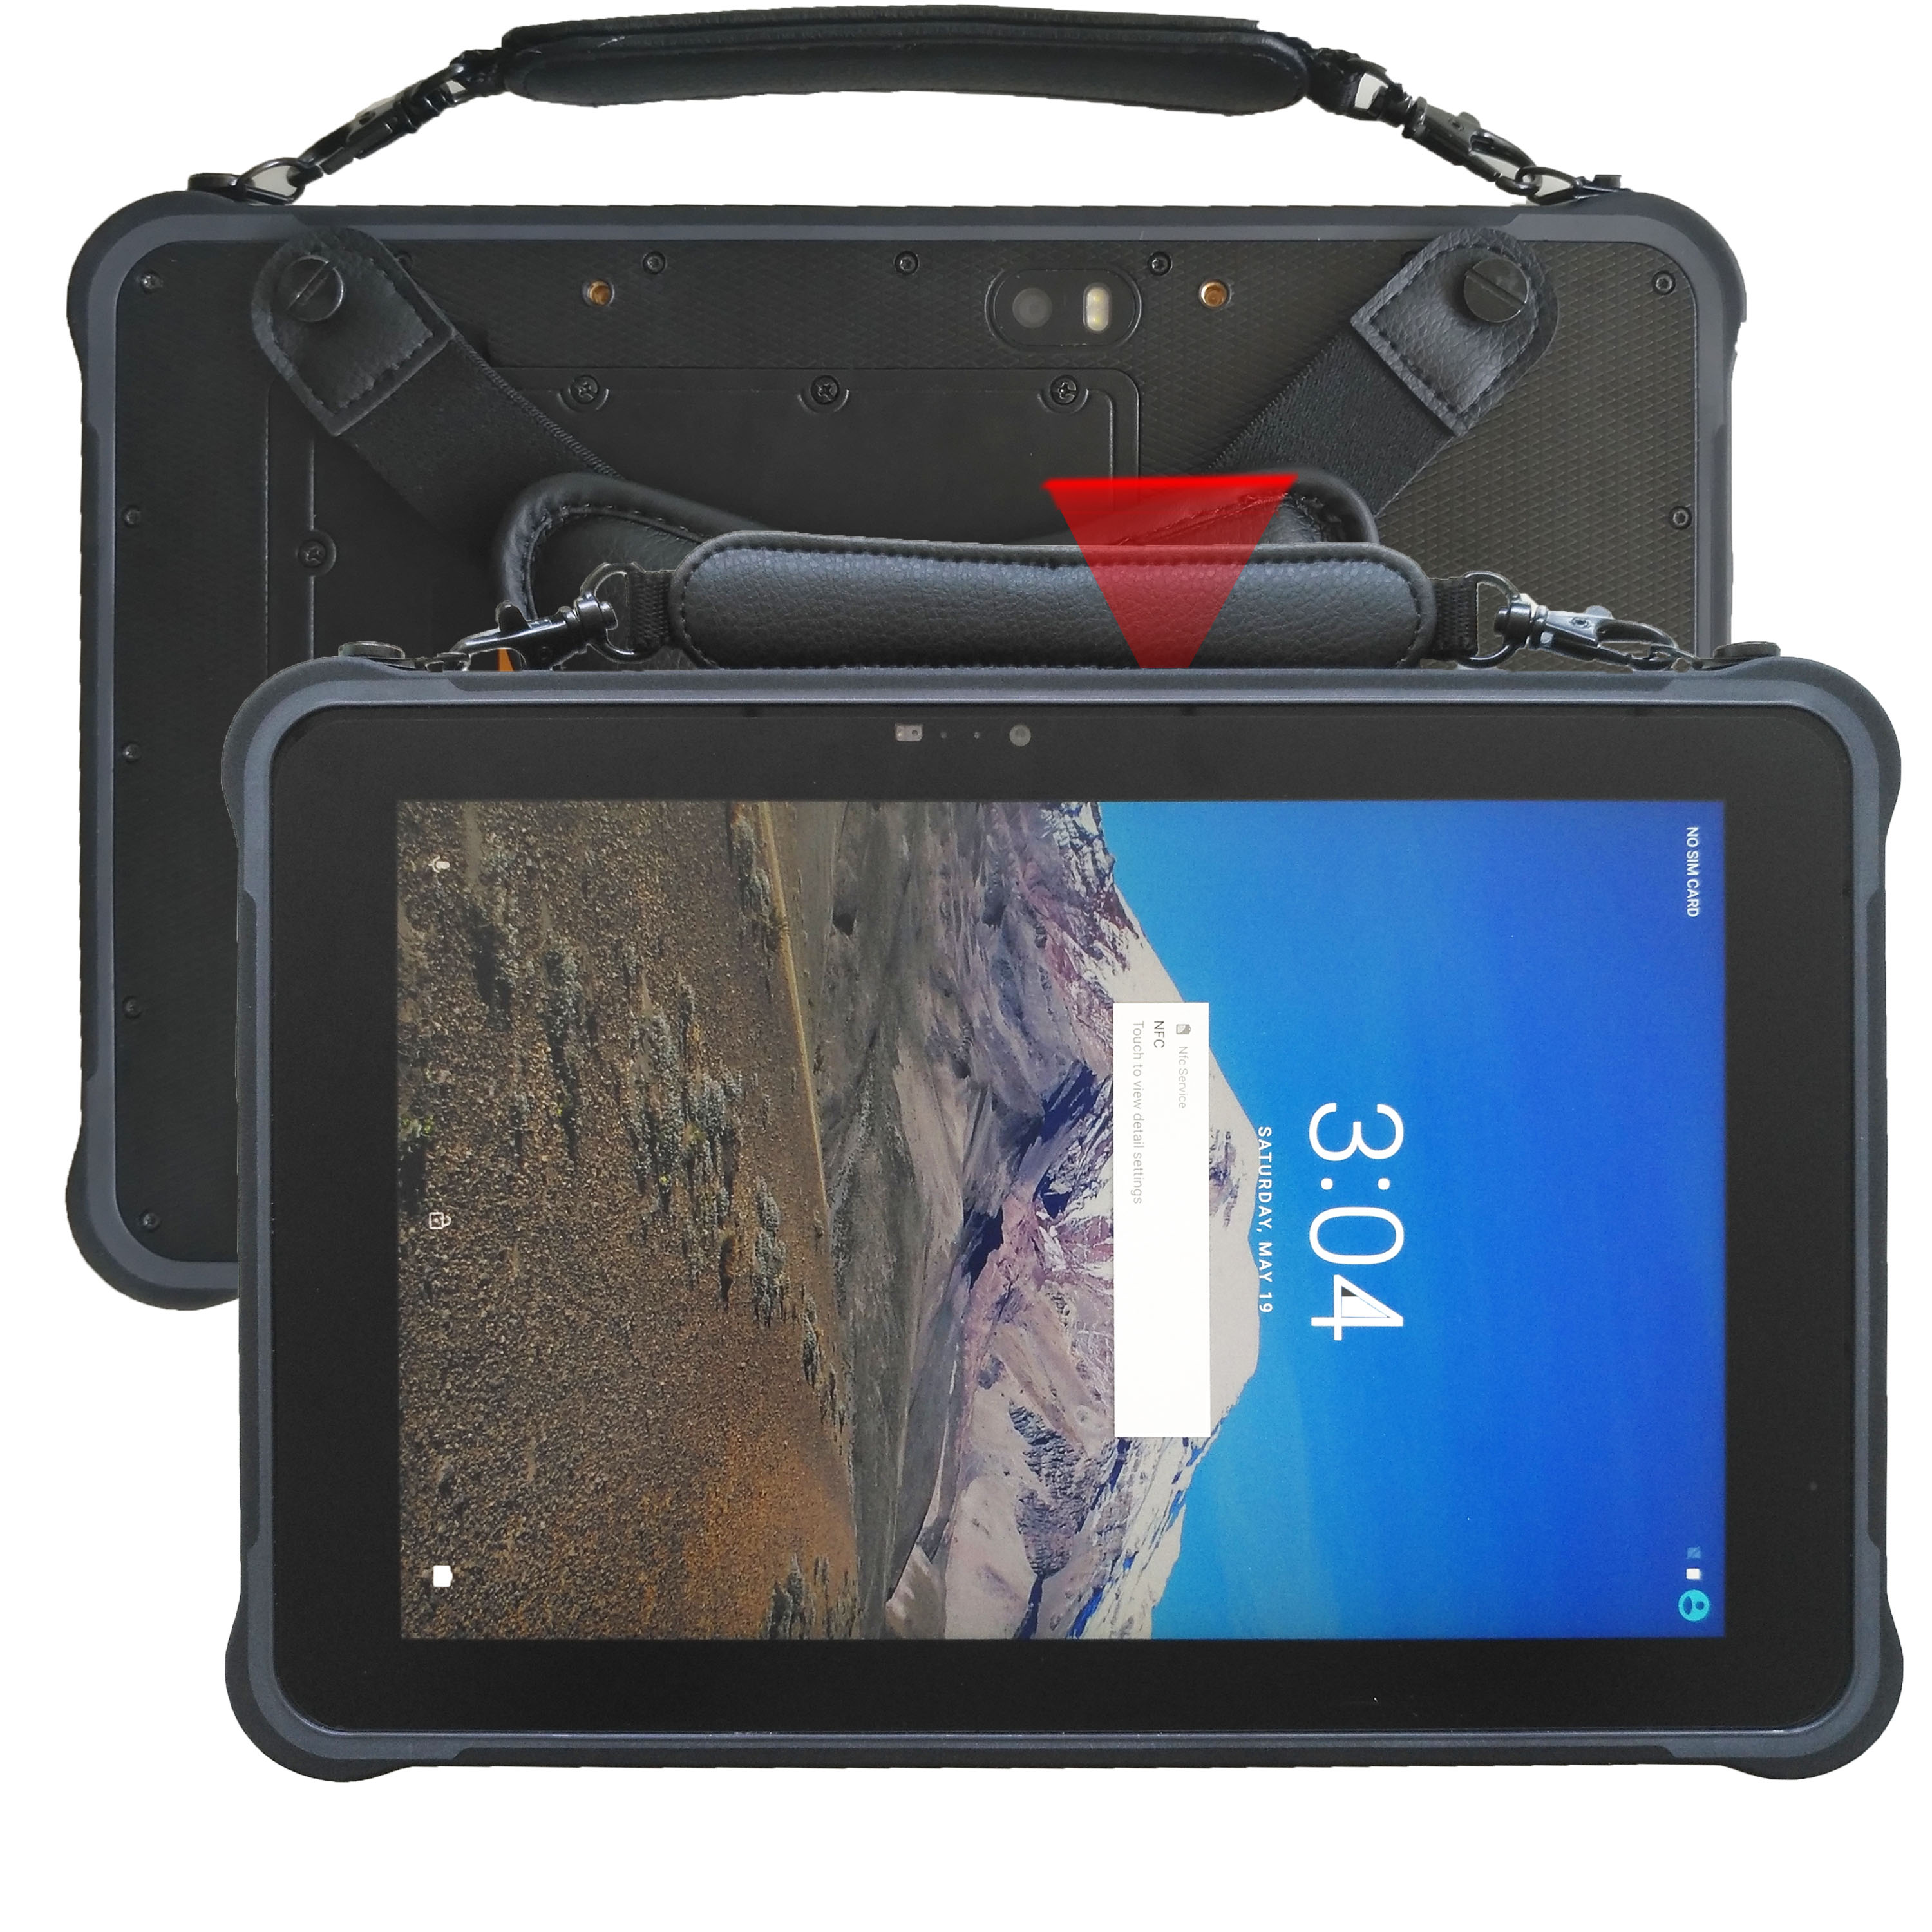 sunshine readable 10.1 inch hot swap android 7.0 rugged tablet